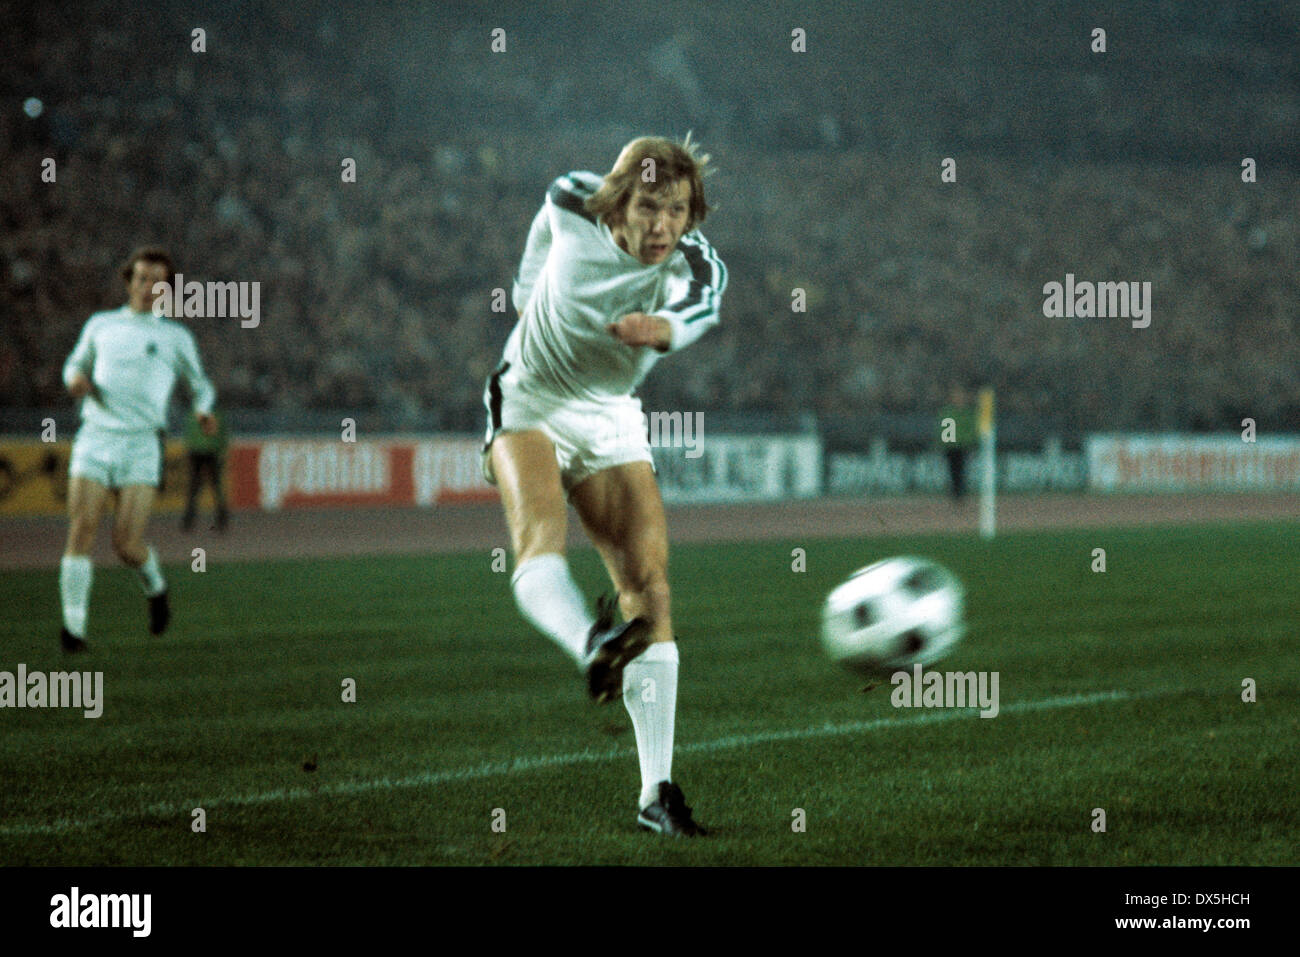 football, European Champion Clubs Cup, Champions League, 1975/1976, last sixteen, first leg, Rhine Stadium Duesseldorf, Borussia Moenchengladbach versus Juventus Turin 2:0, shot on goal by Henning Jensen (MG) - Stock Image